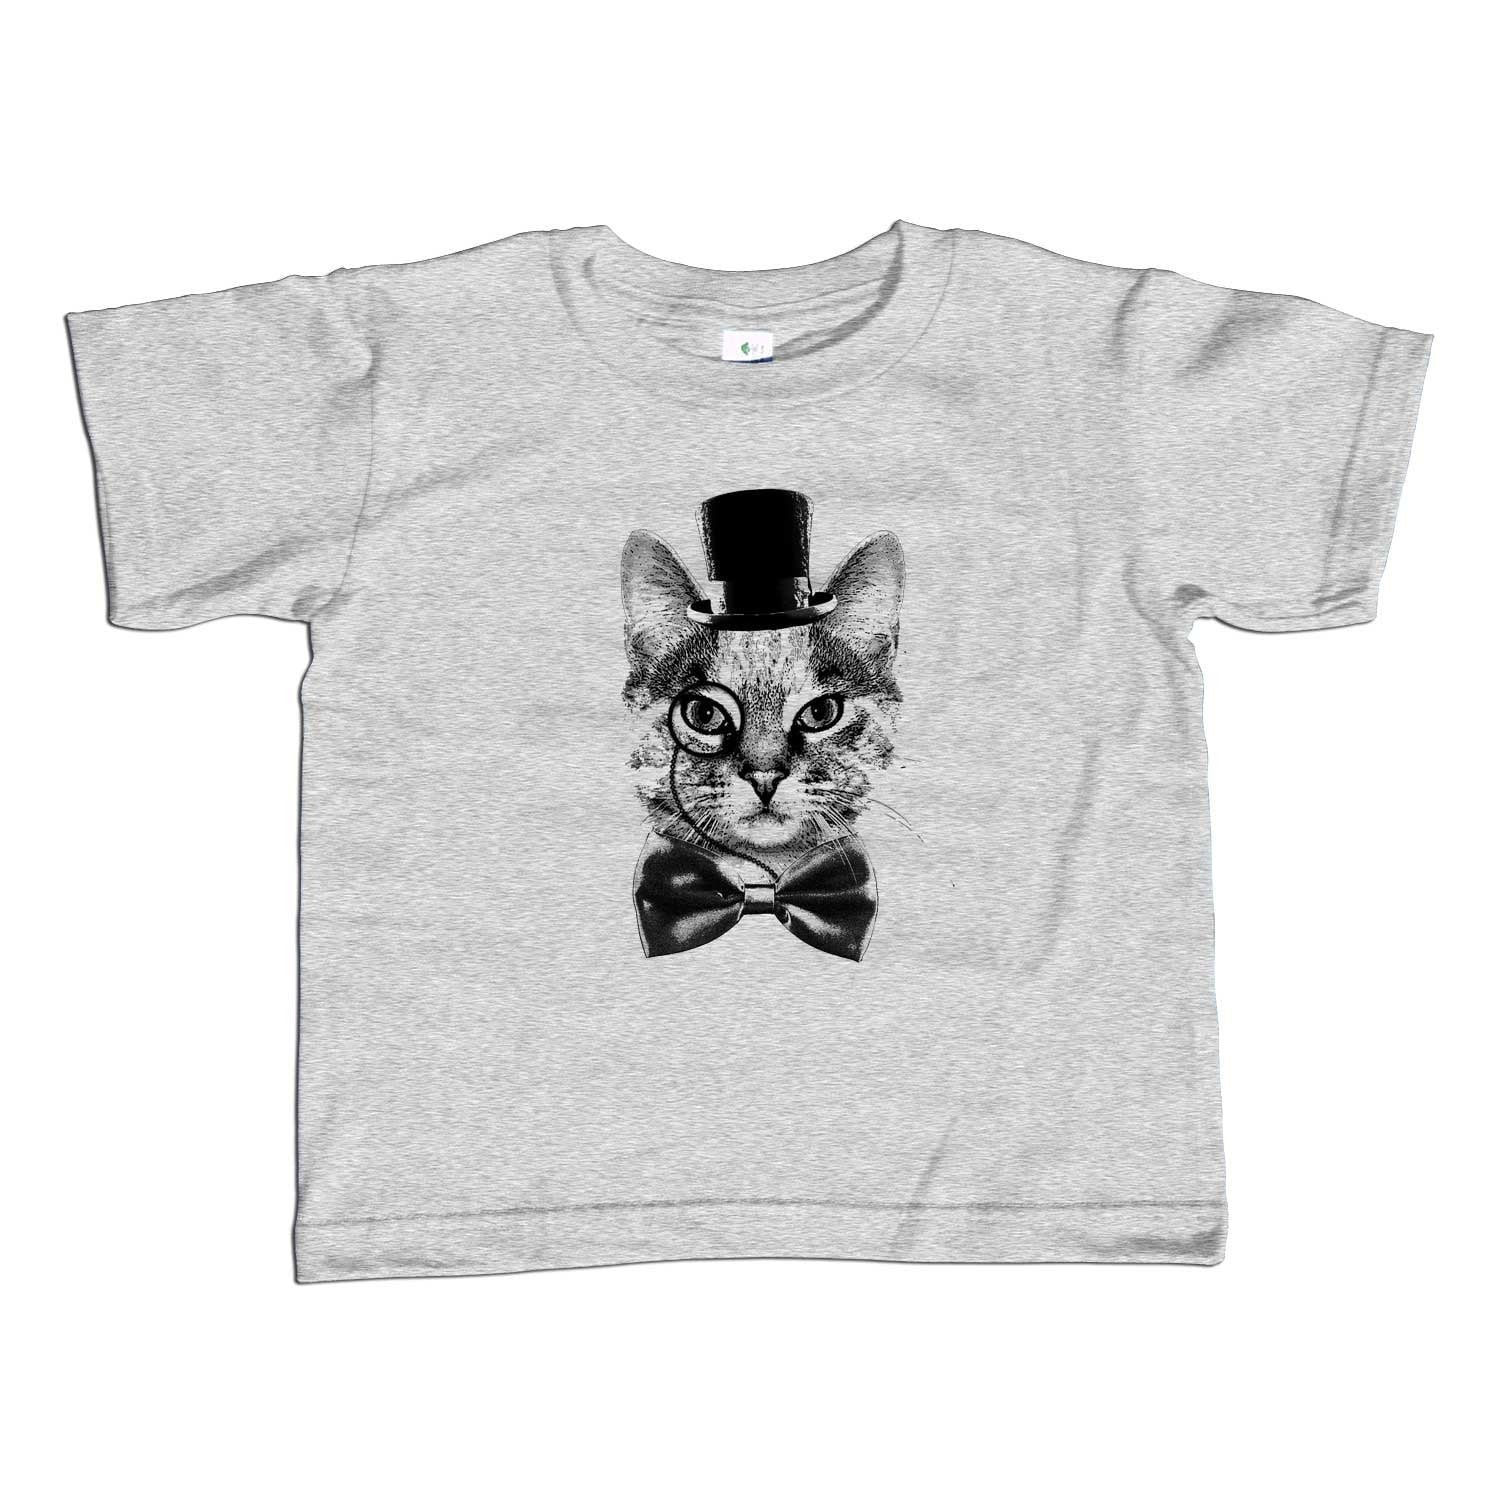 Boy's Steampunk Cat T-Shirt Monocle Top Hat Bowtie